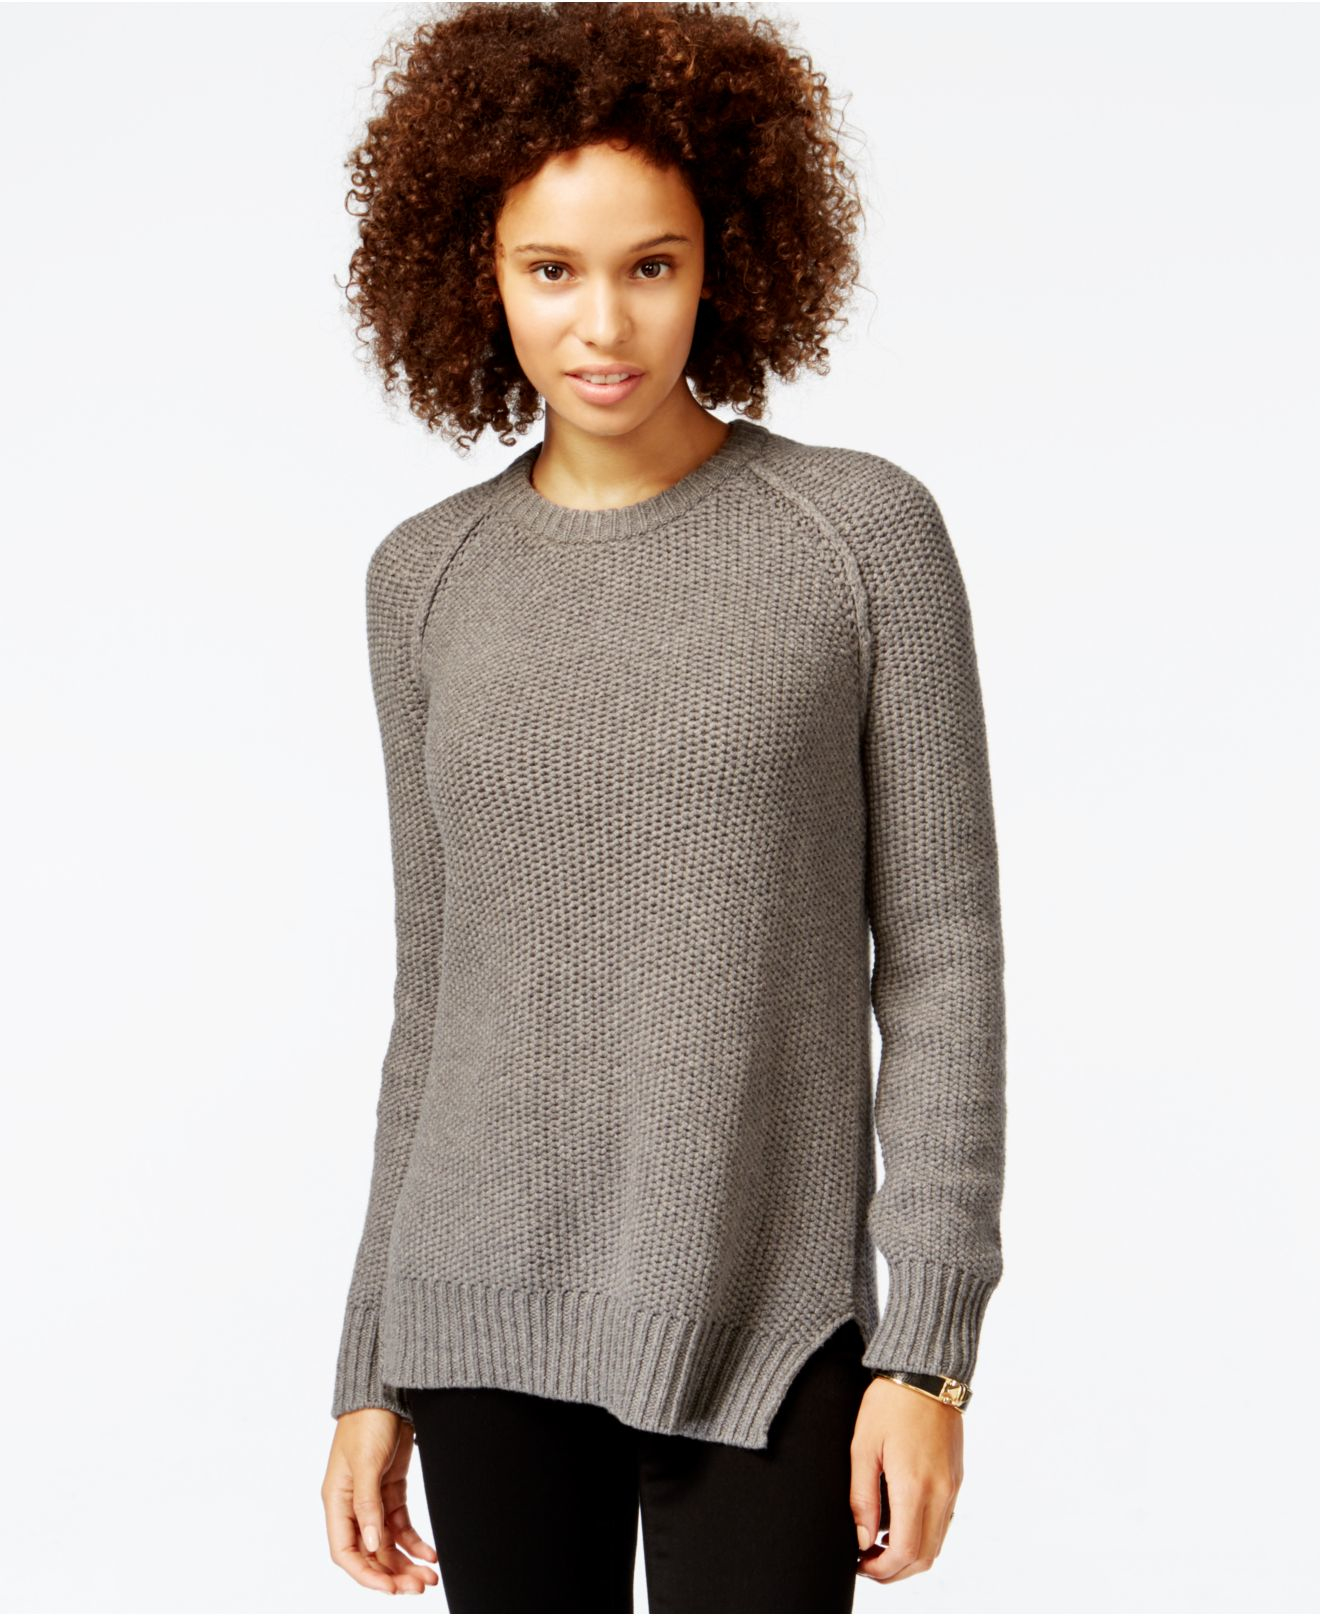 Rachel rachel roy Long-sleeve Open-back Sweater in Gray | Lyst